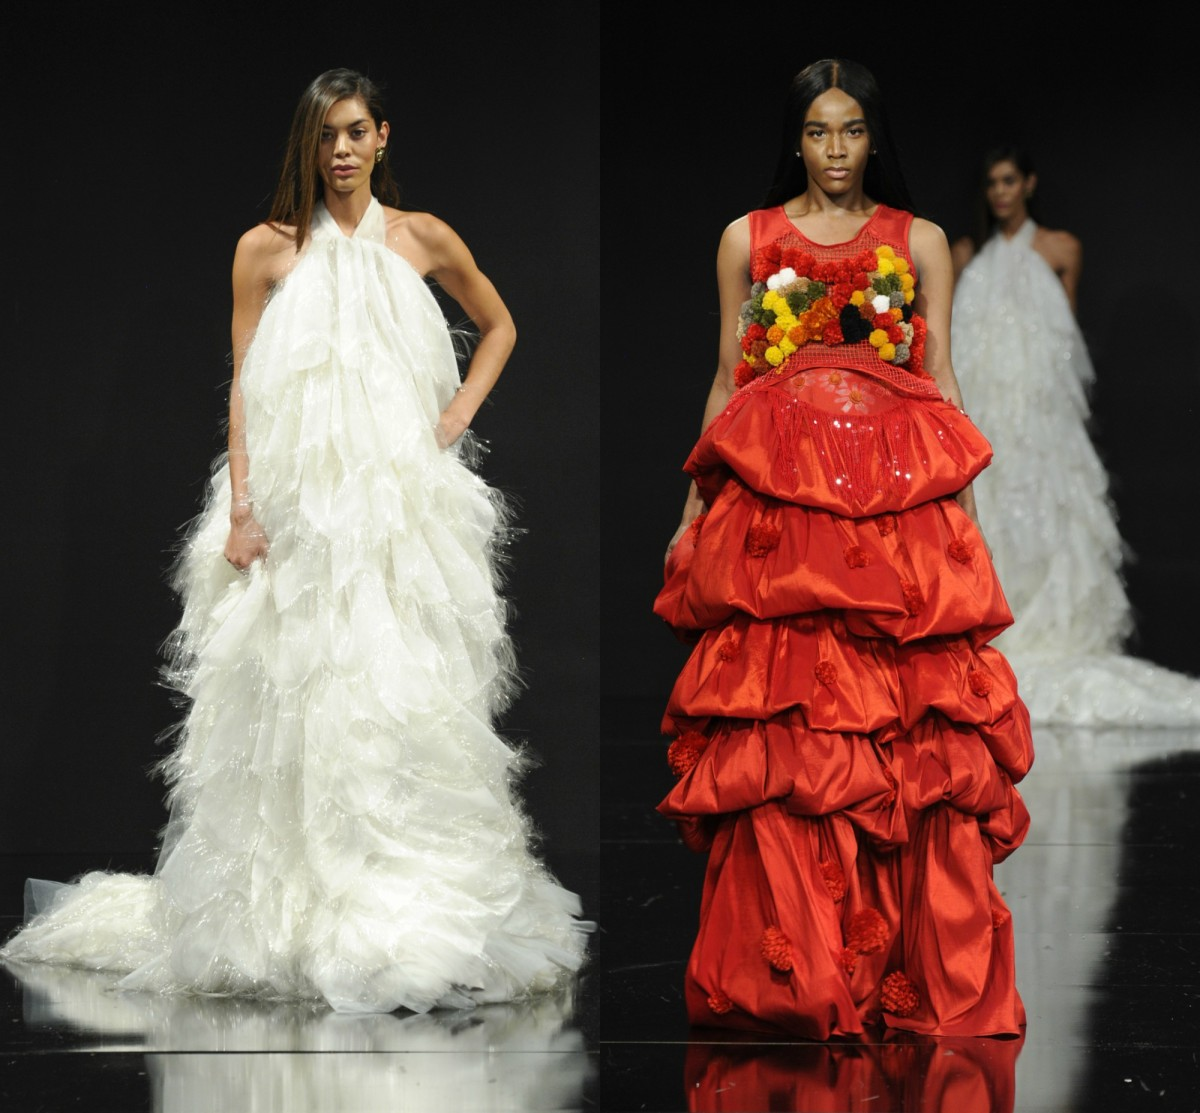 Next Up! The Best Designer Showcases of Art Hearts Fashion